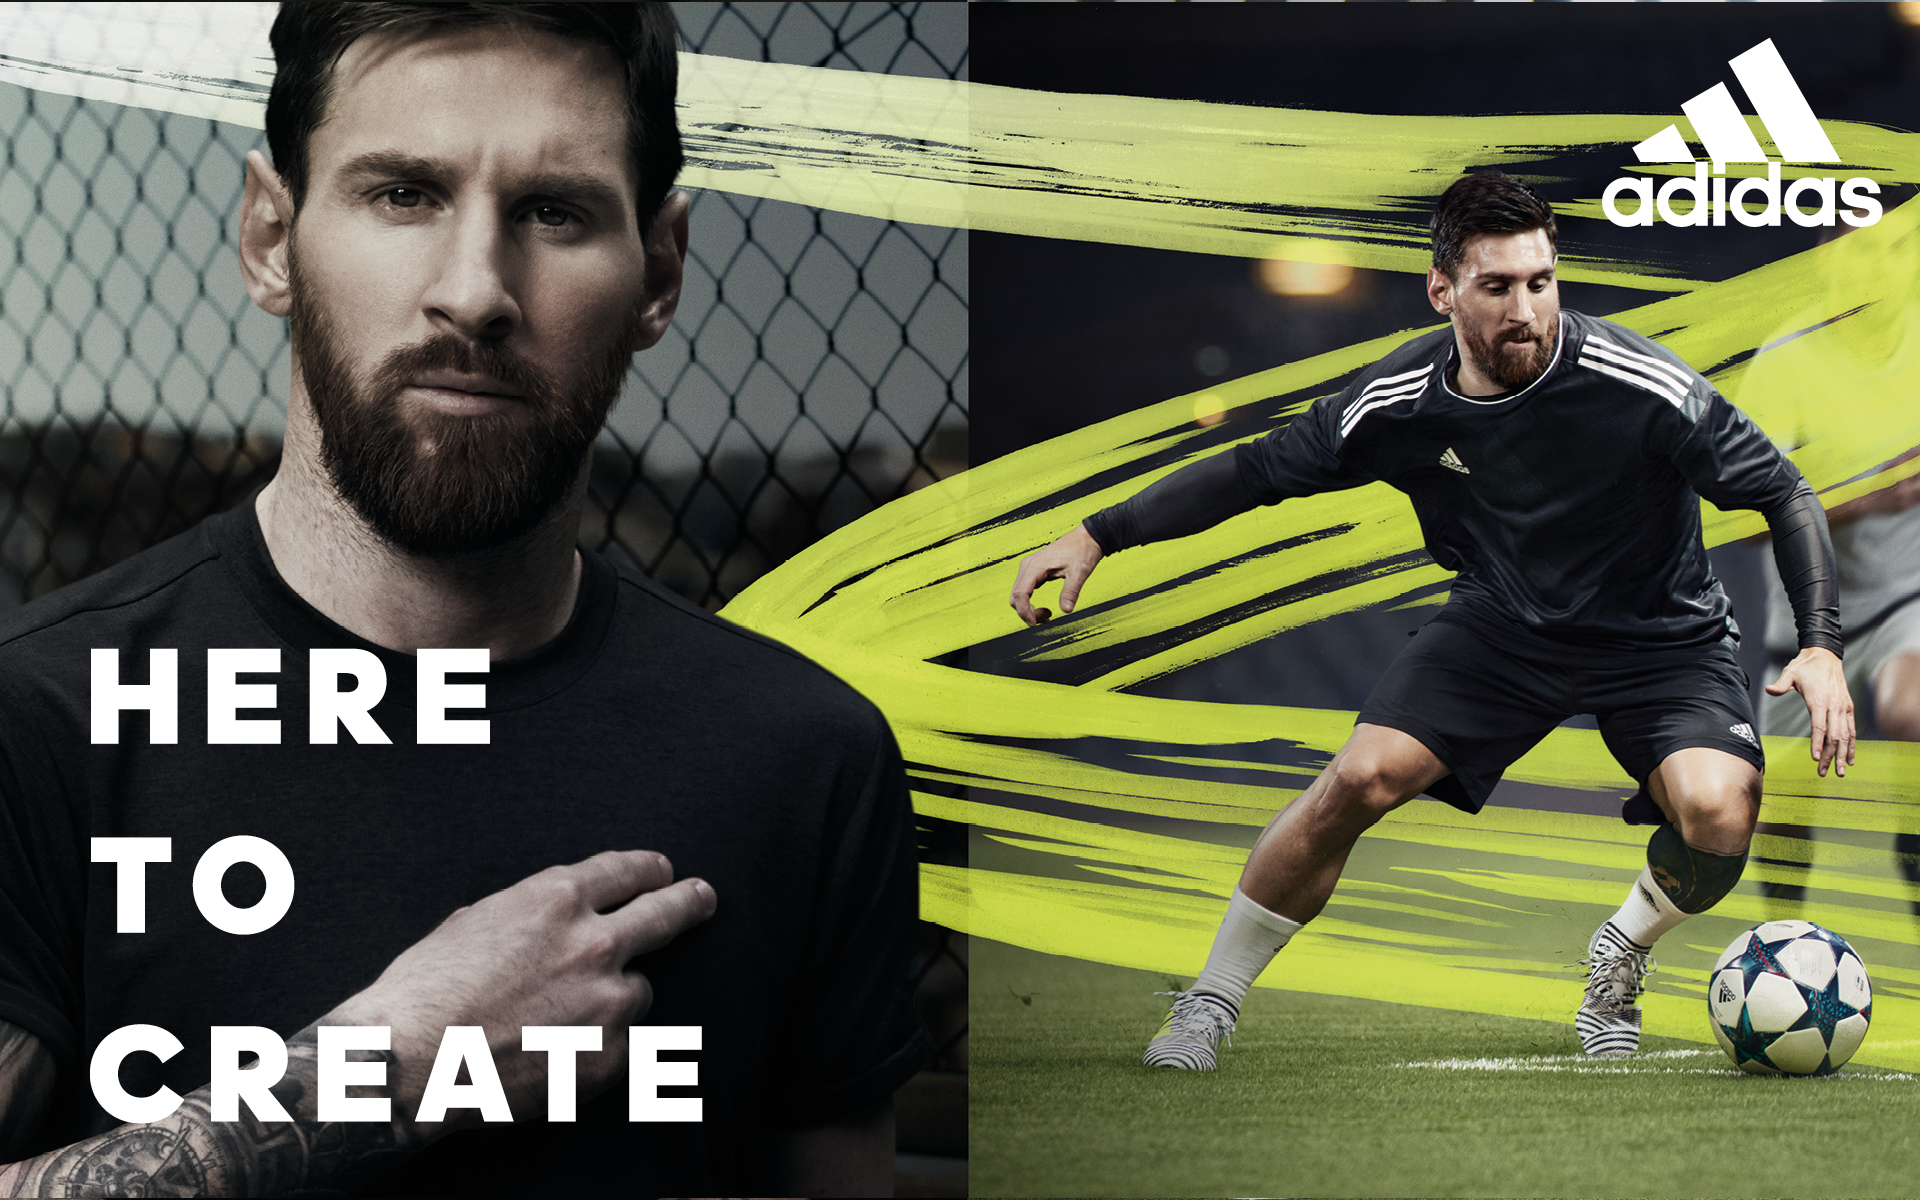 Adidas 2017 Here To Create Advertising Campaign Stevie Gee